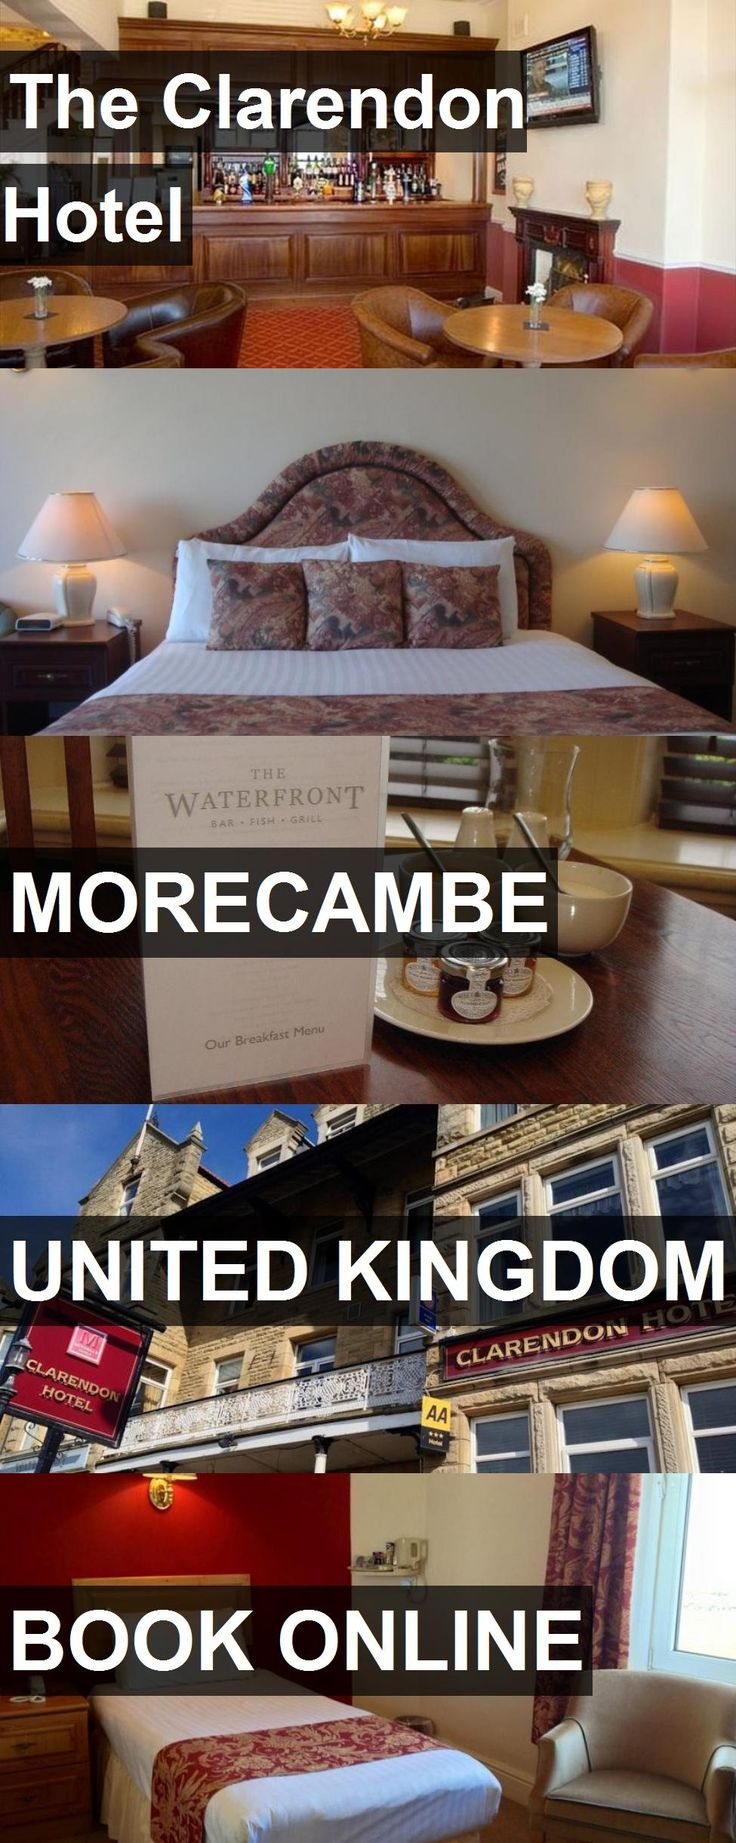 The Clarendon Hotel in Morecambe, United Kingdom. For more information, photos, reviews and best prices please follow the link. #UnitedKingdom #Morecambe #travel #vacation #hotel